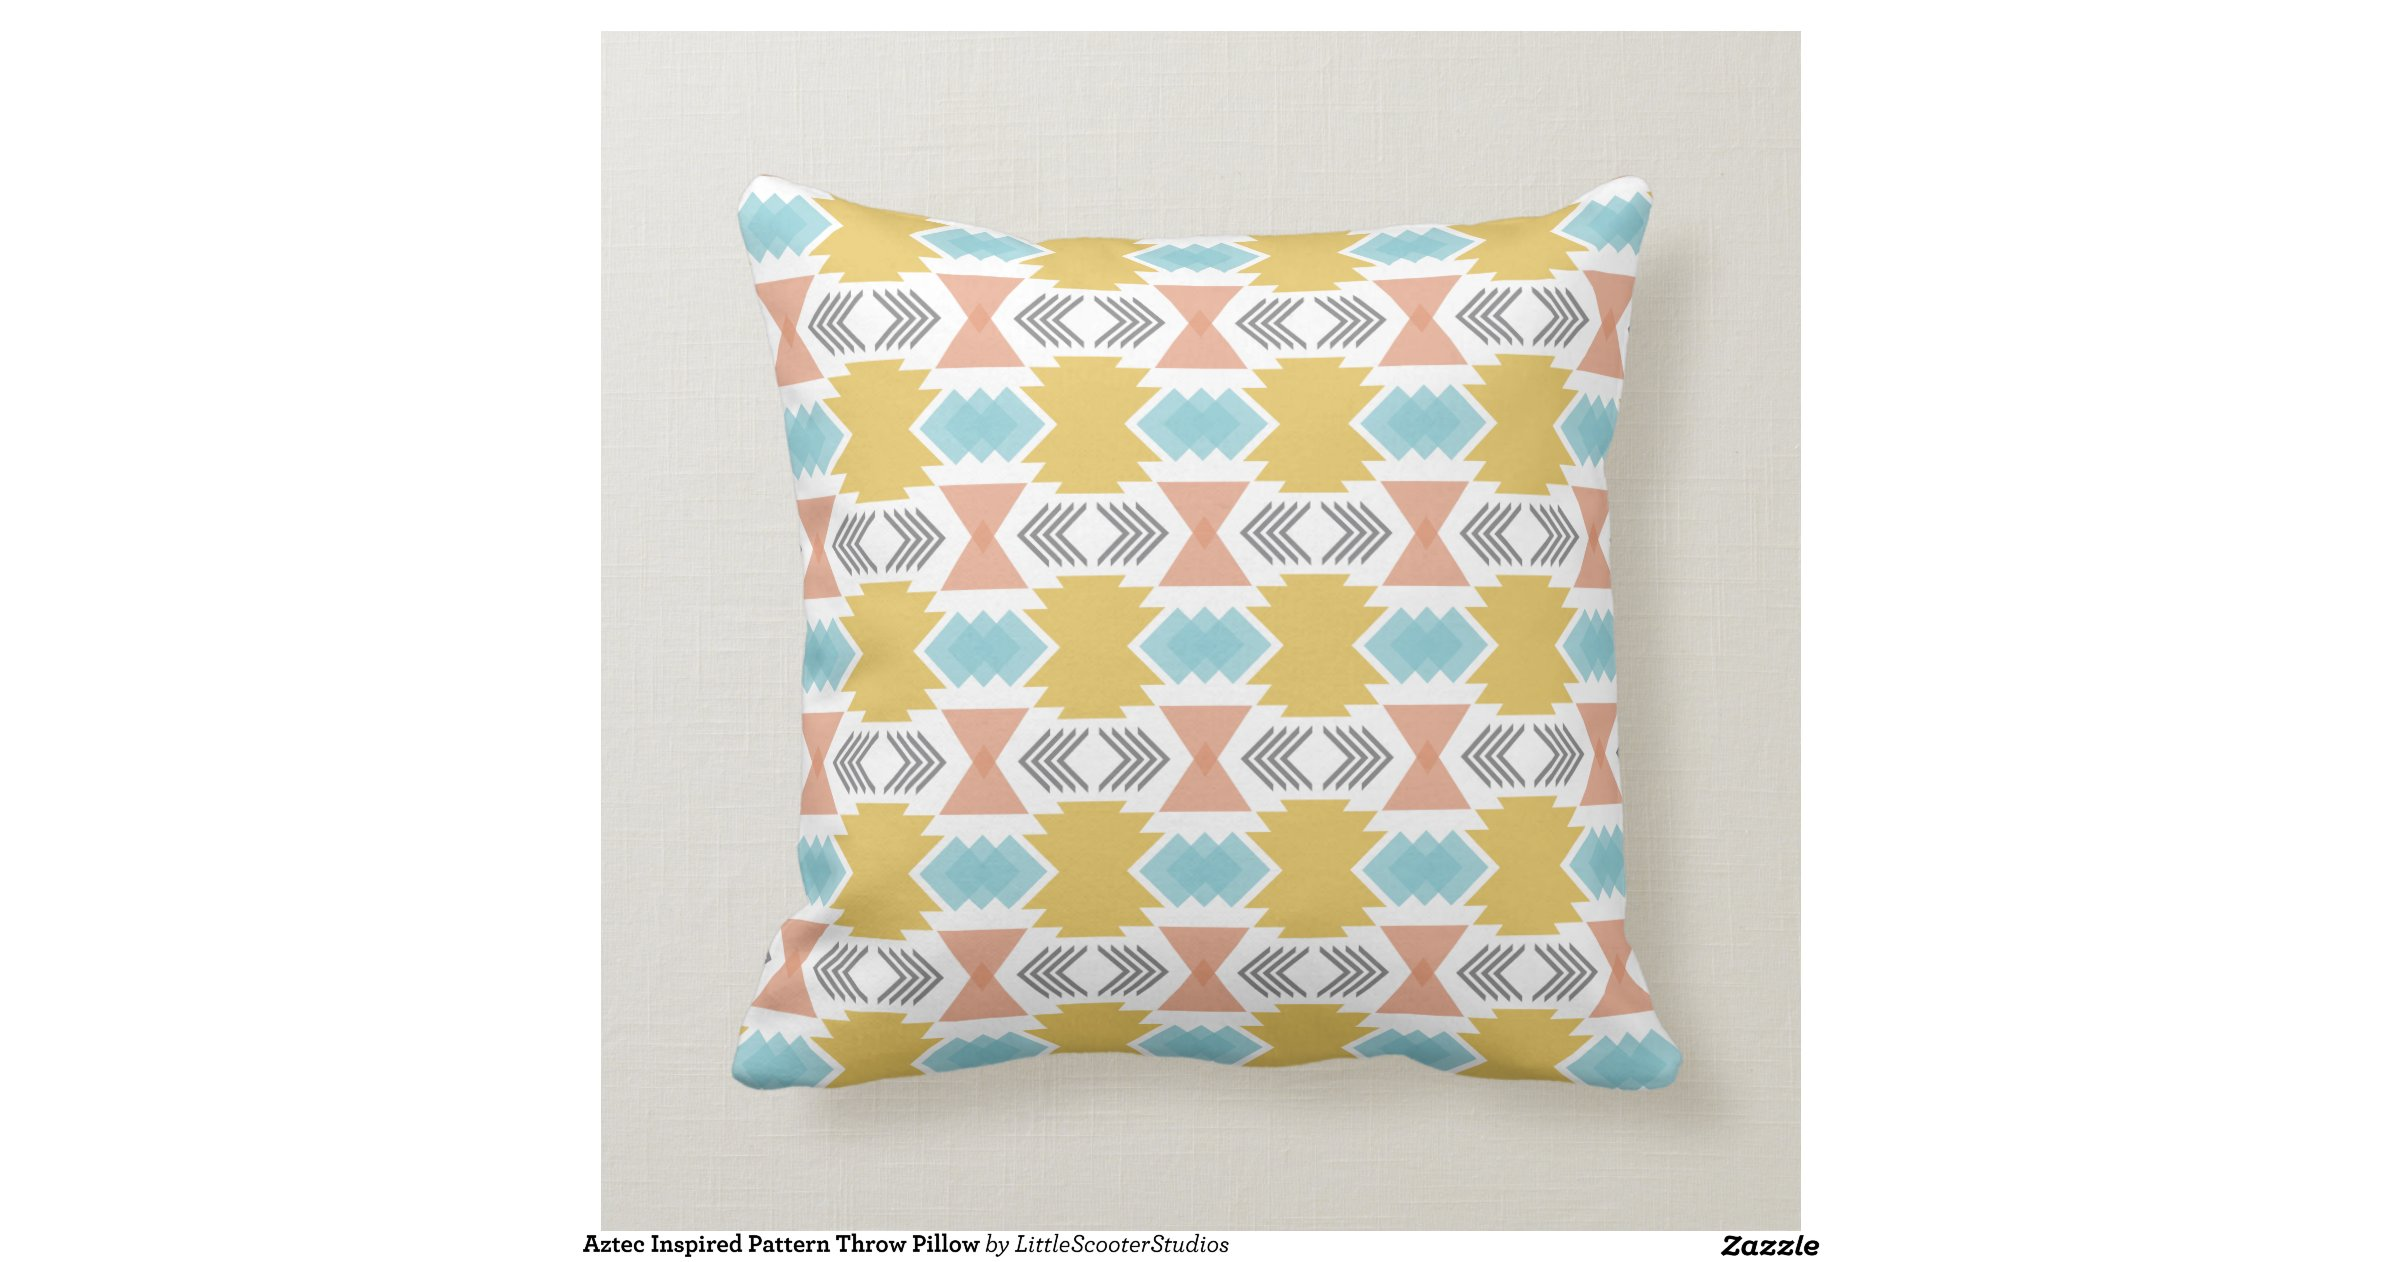 Throw Pillow Design Patterns : Aztec Inspired Pattern Throw Pillow Zazzle